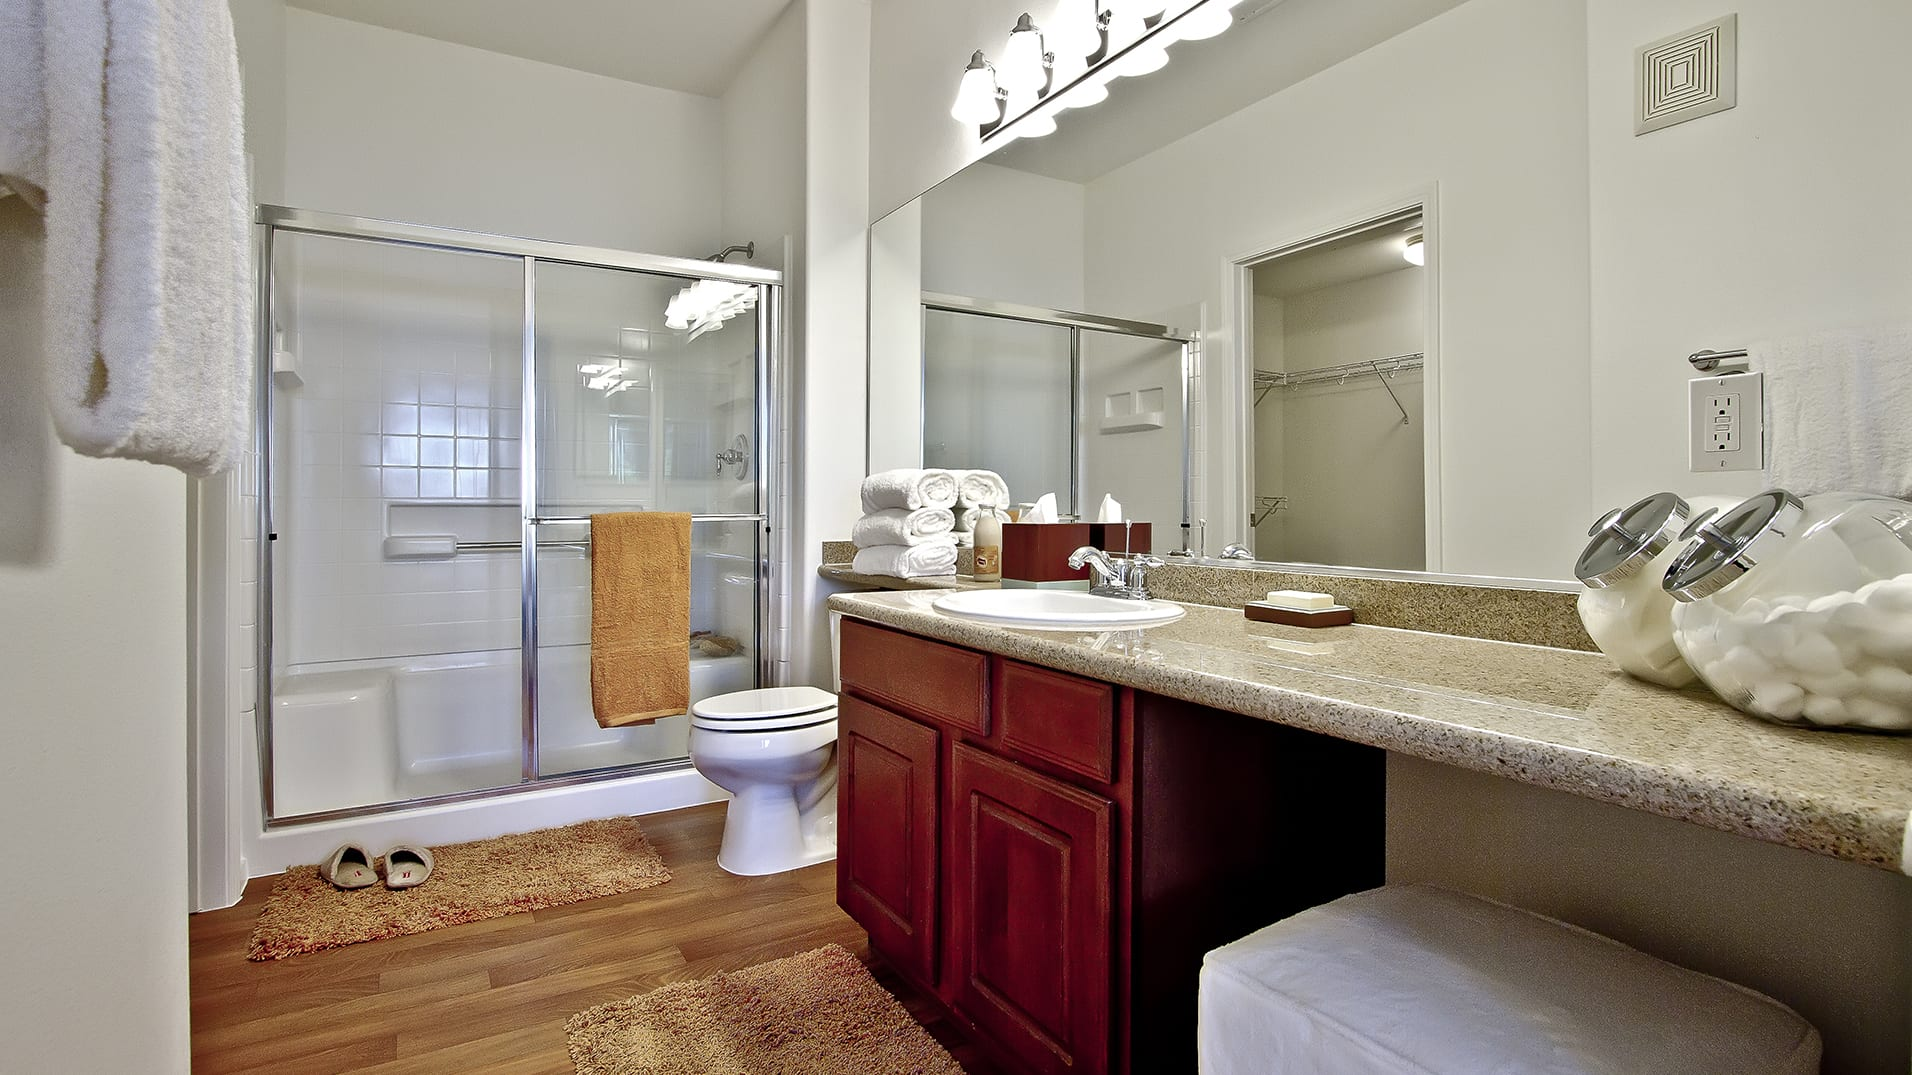 Spacious bathroom with wood-style flooring, walk-in shower with bench, and oversized vanity with granite countertop.